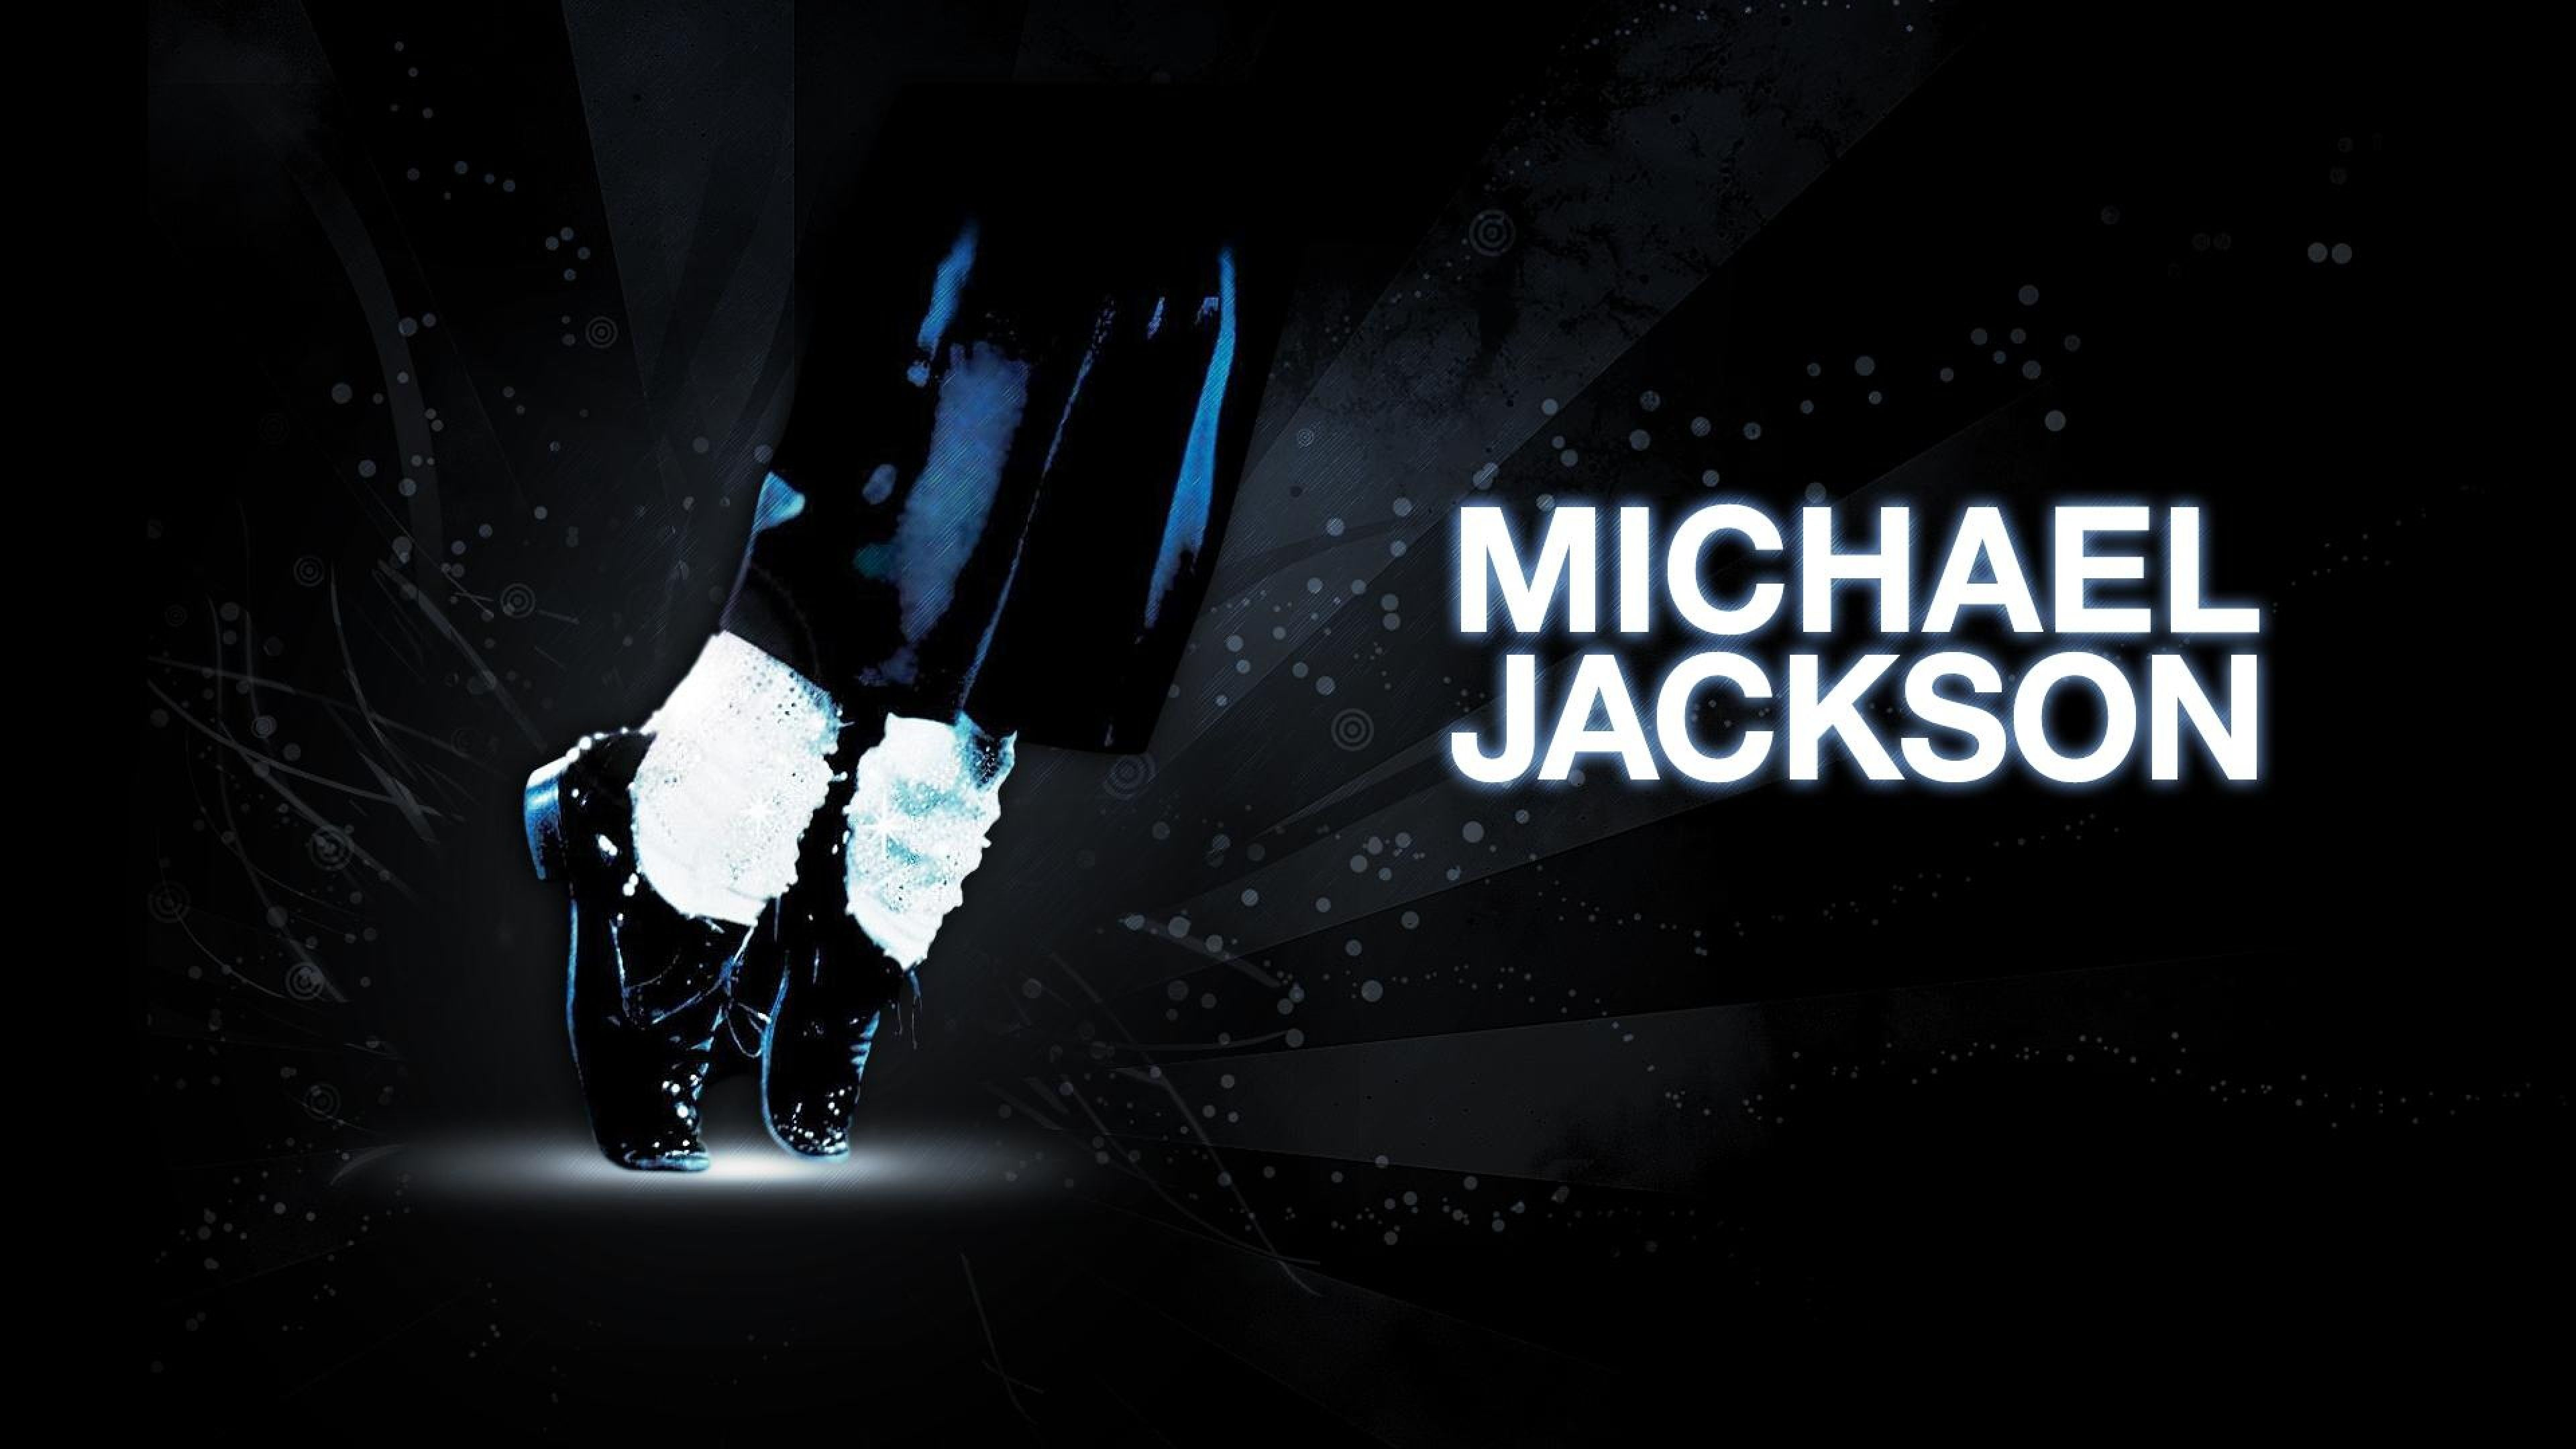 4k ultra hd michael jackson wallpapers hd, desktop backgrounds